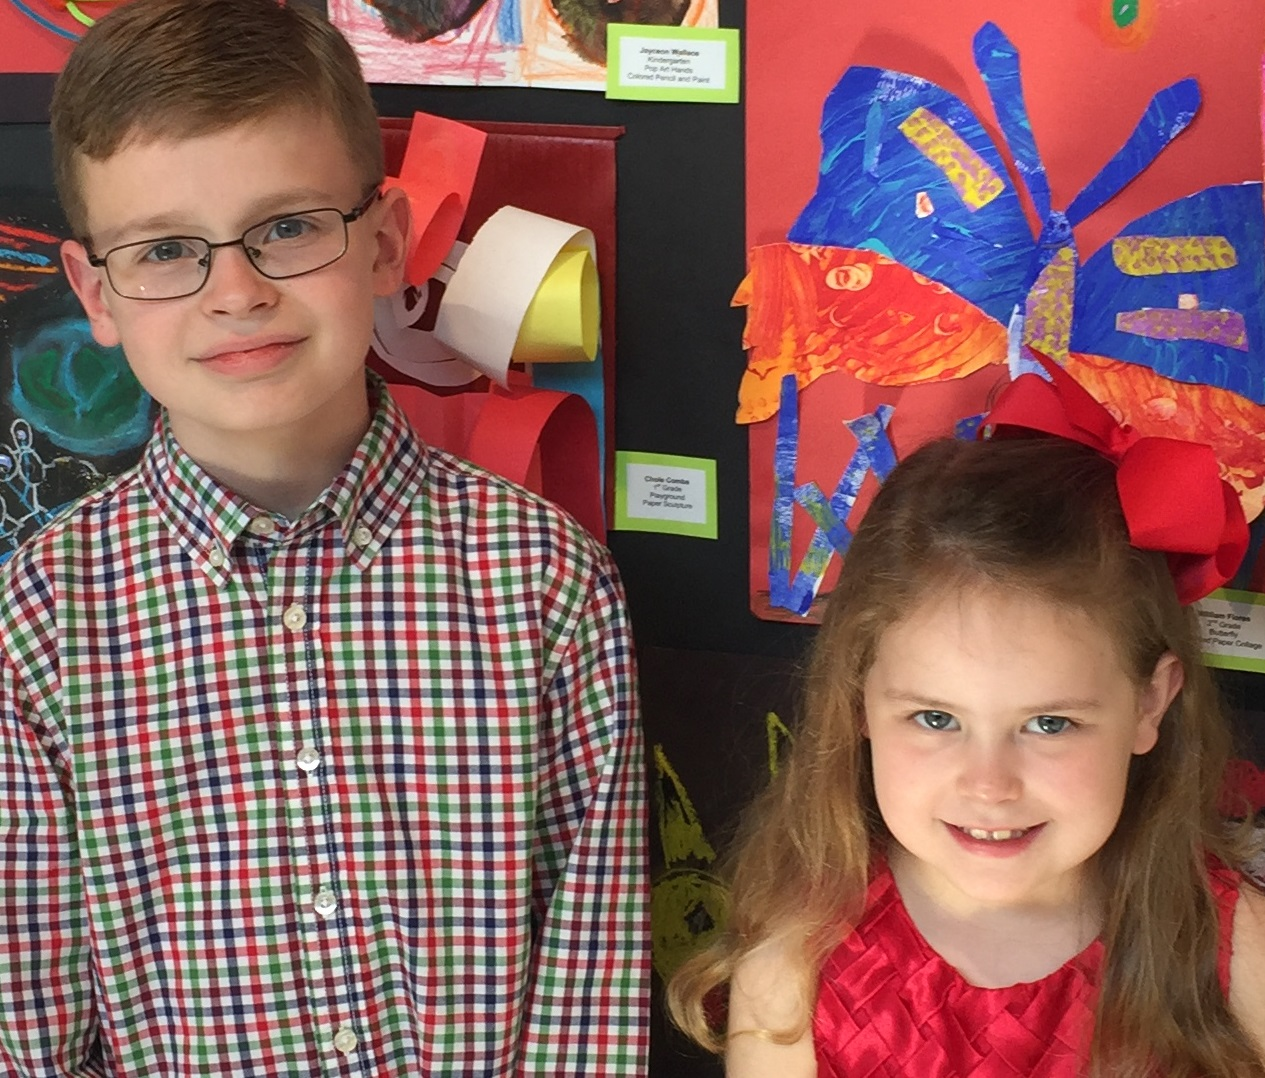 Siblings show off their art!